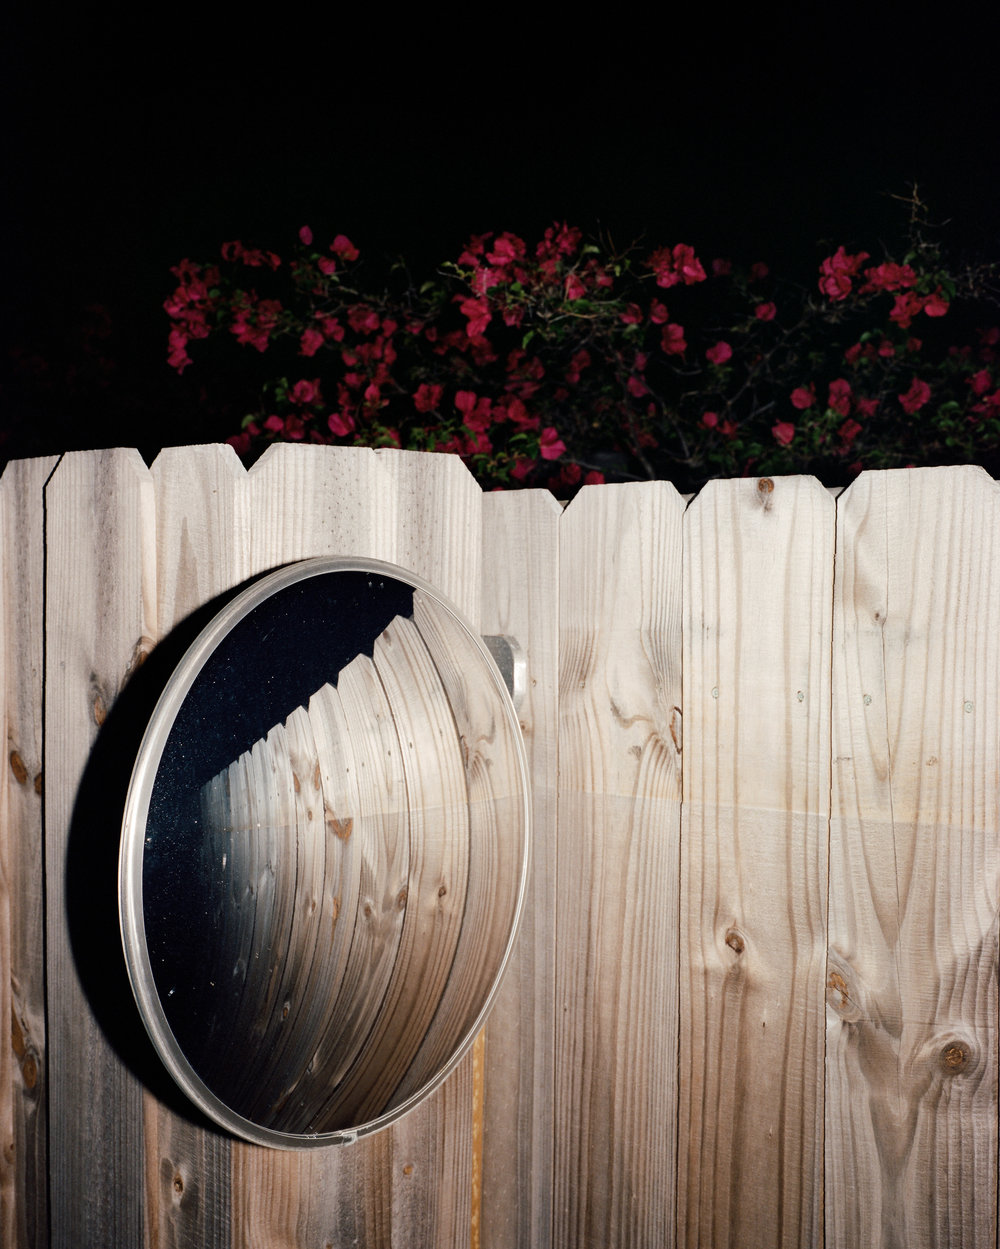 Selections announced for the Passporte Gallery's   Prize for Surreal Photography  juried by Sarah Sudhoff, owner of the Capsule Gallery in Texas.